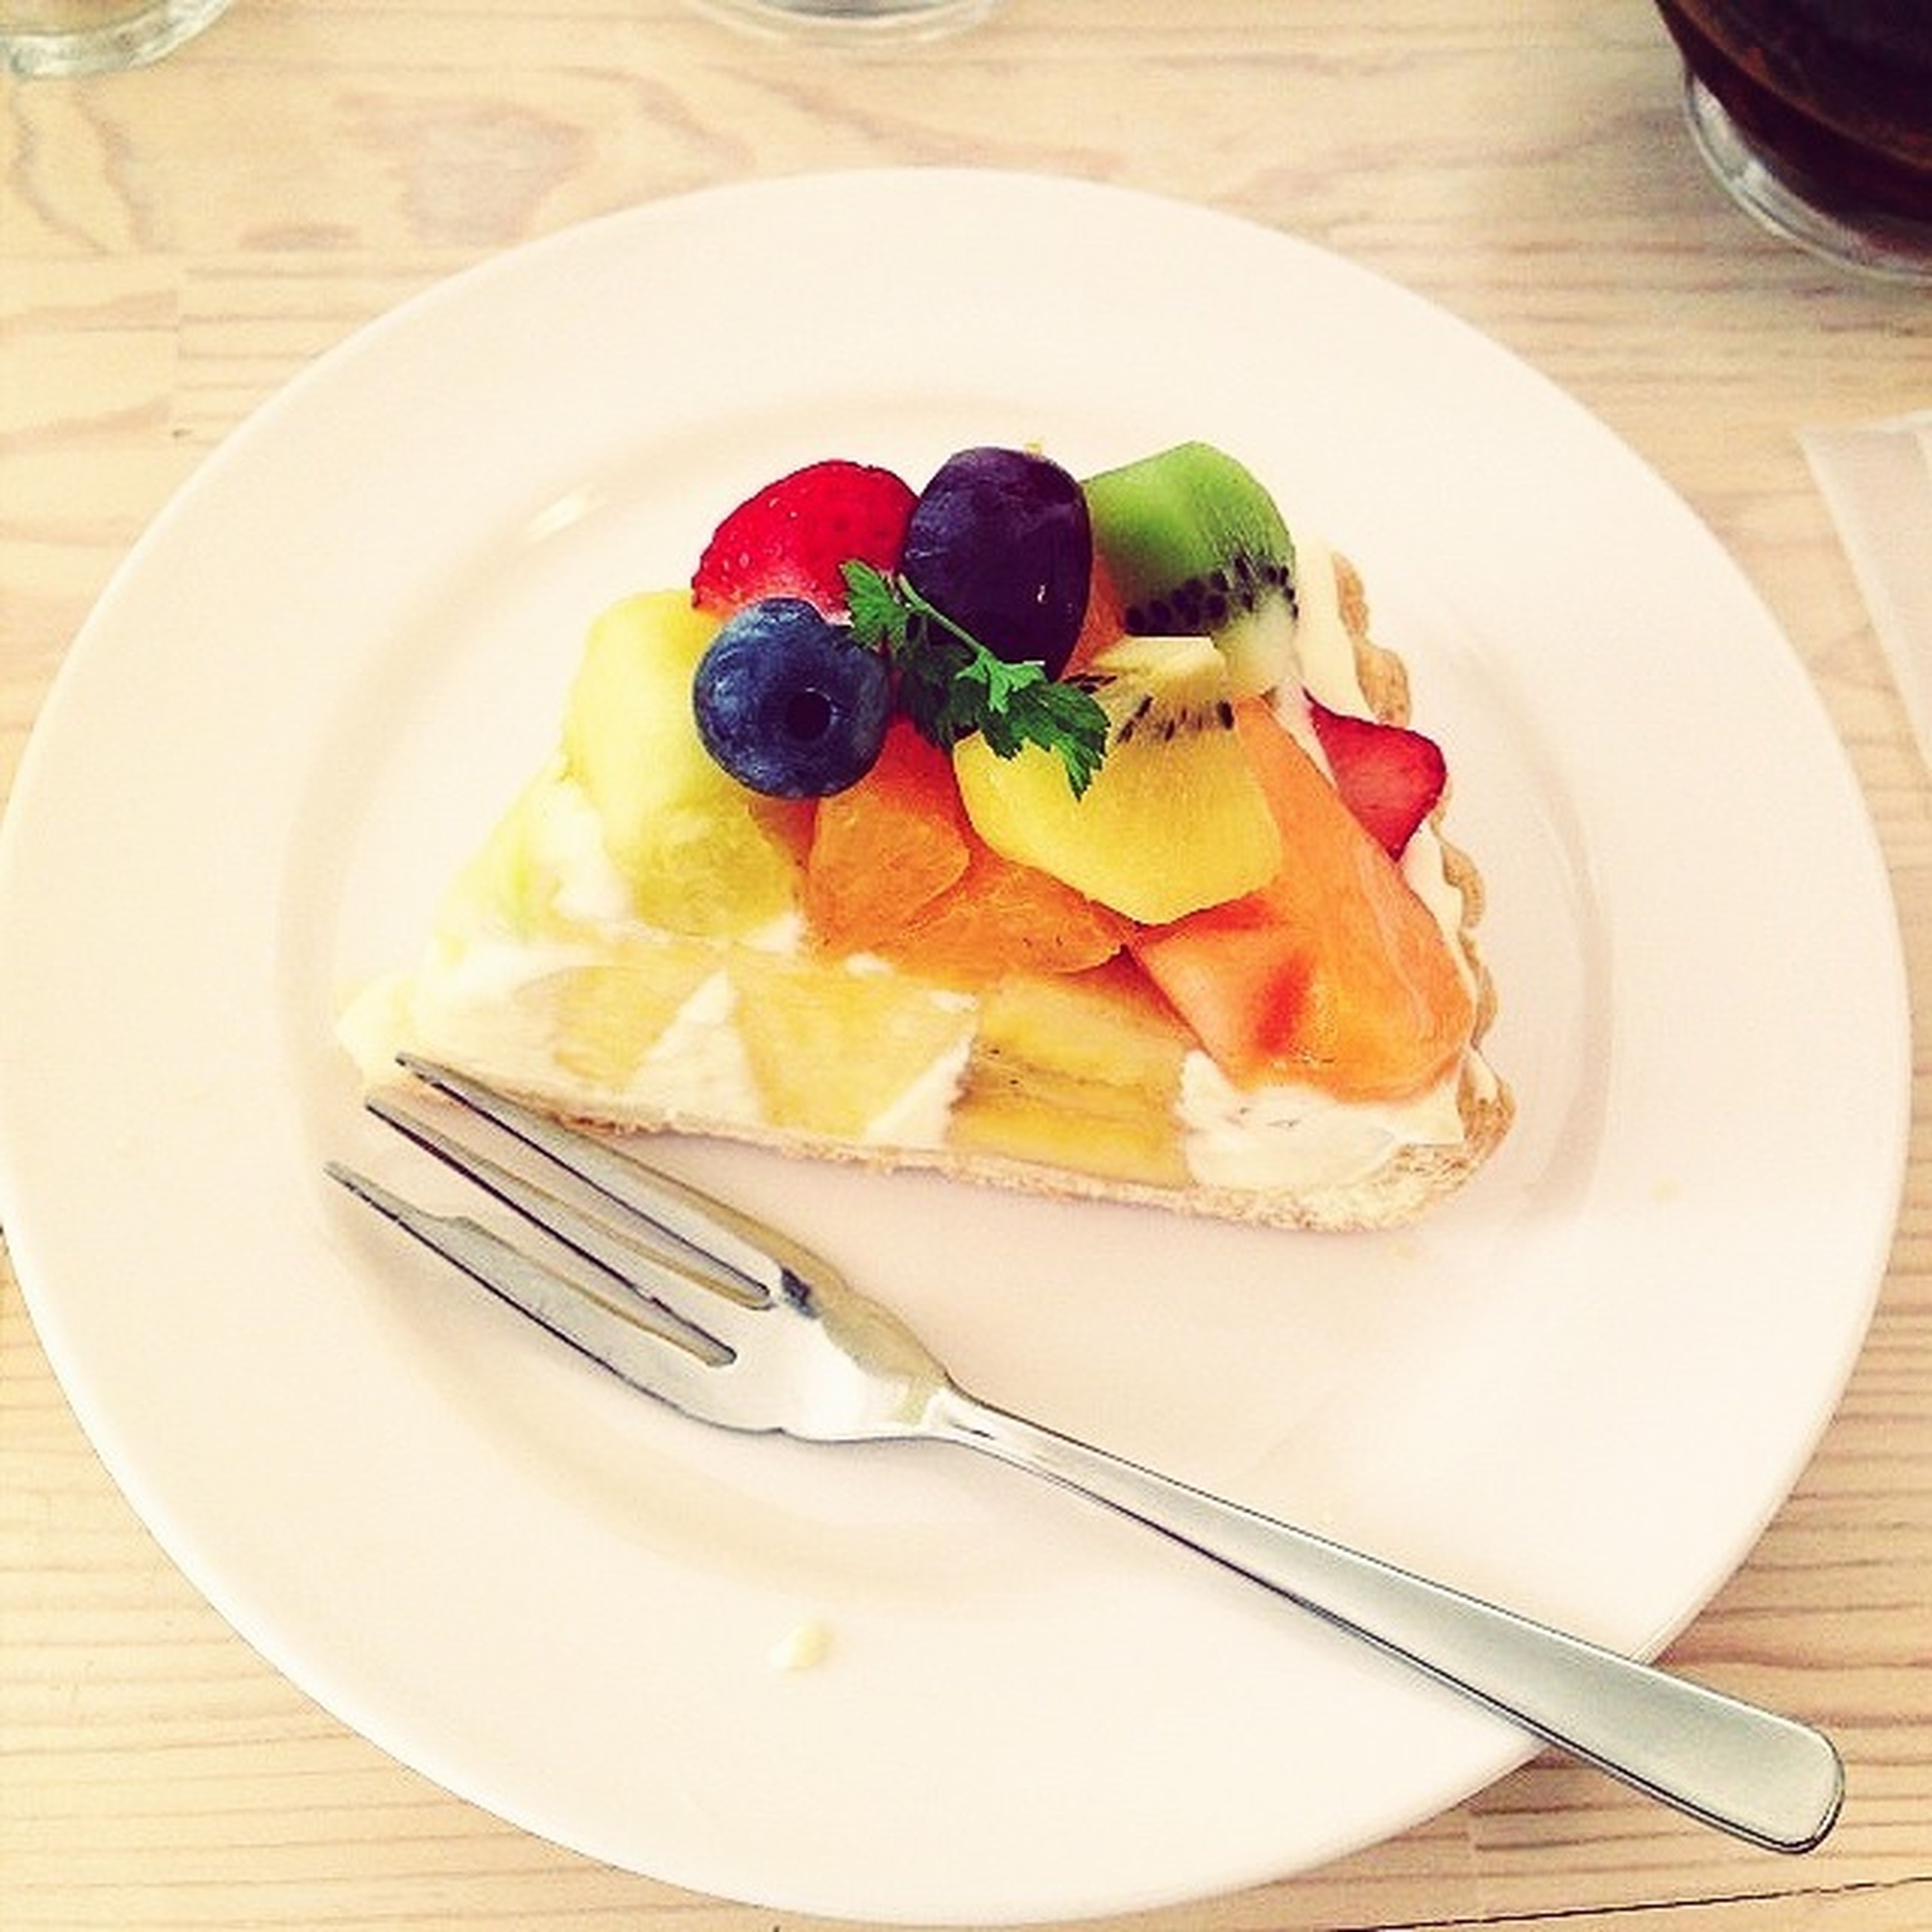 food and drink, food, freshness, indoors, plate, ready-to-eat, still life, healthy eating, table, serving size, indulgence, meal, high angle view, fork, temptation, bowl, close-up, fruit, served, slice